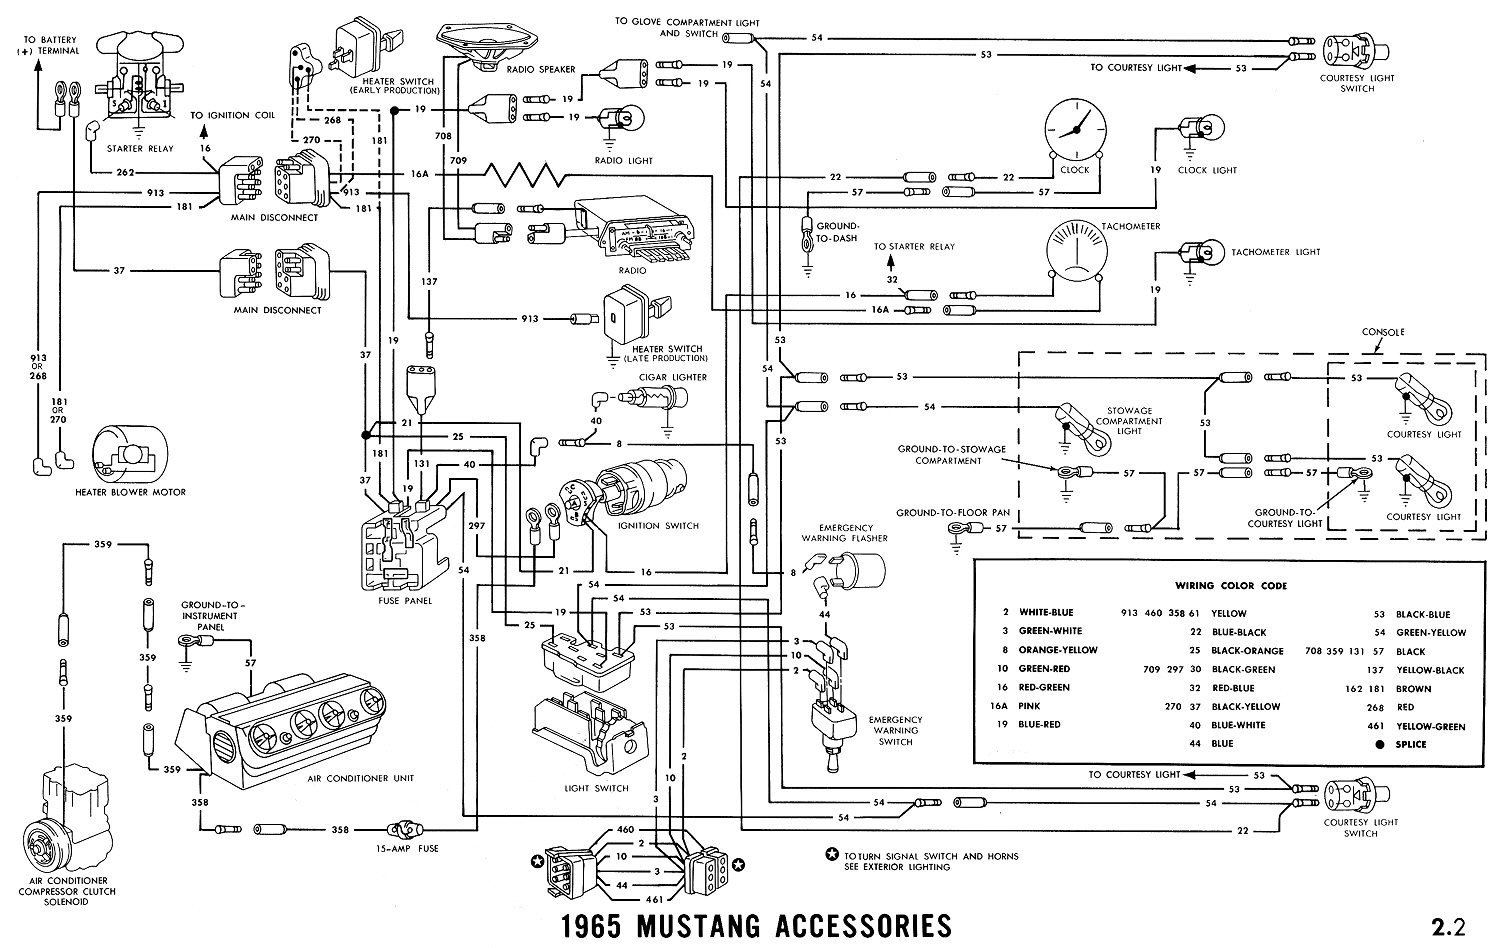 1965i mustang wiring harness diagram 66 mustang wiring diagram \u2022 free 2006 mustang wiring diagram at bakdesigns.co